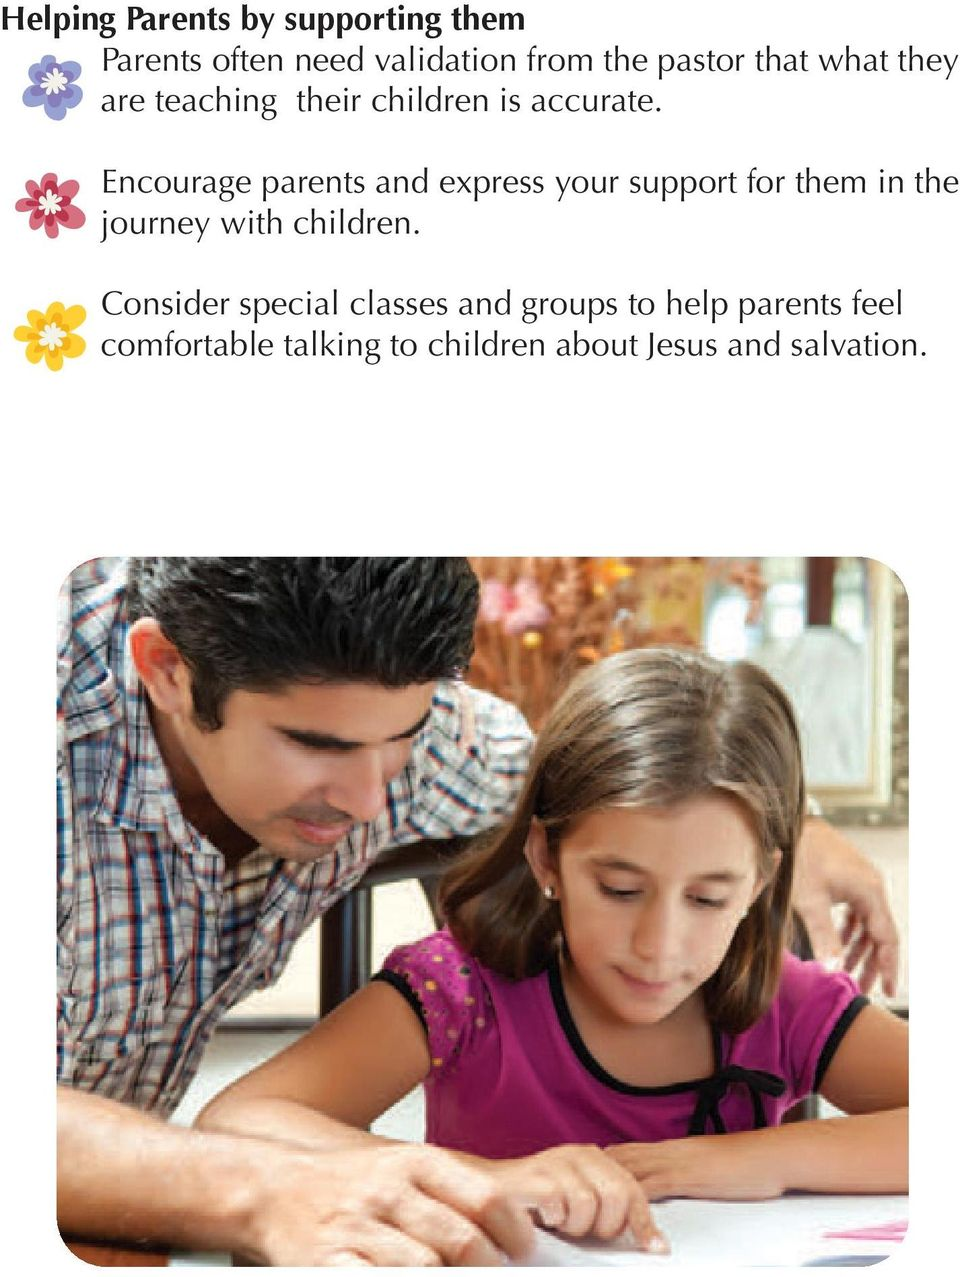 Encourage parents and express your support for them in the journey with children.